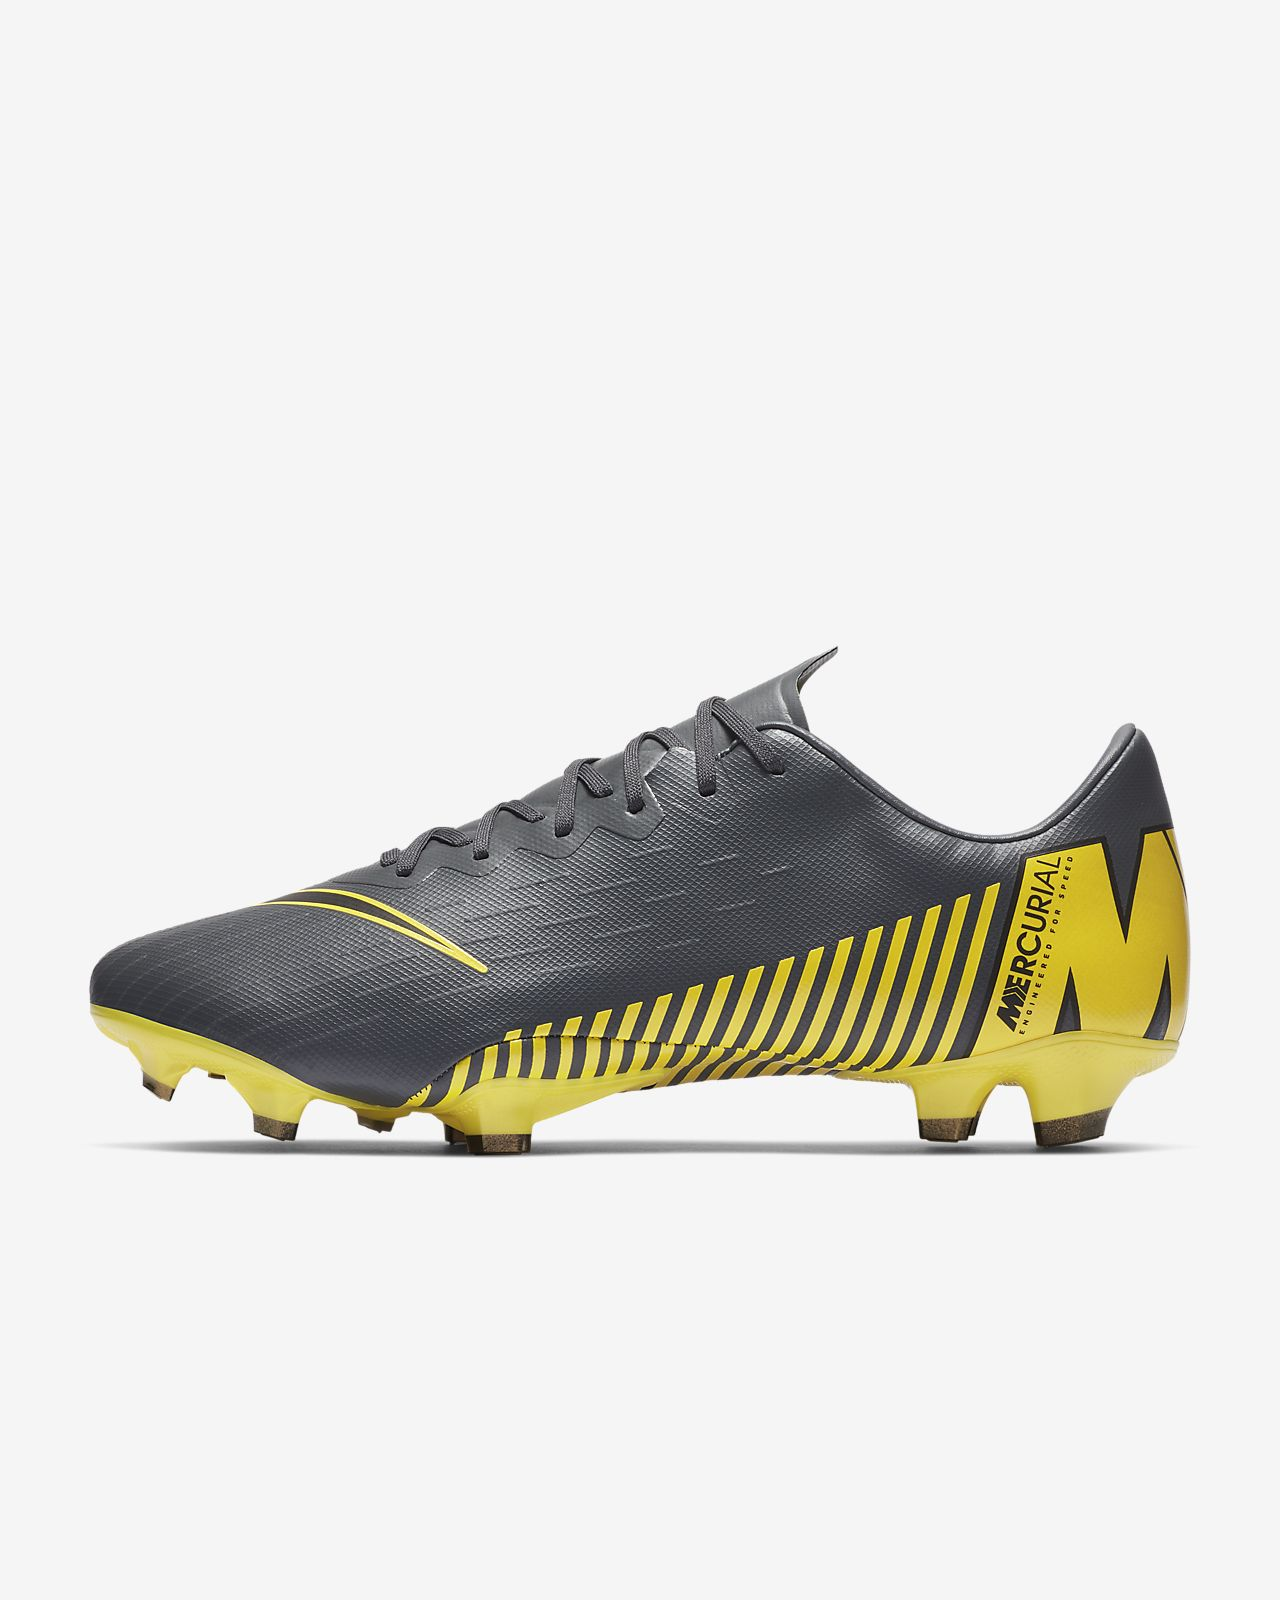 timeless design c34e5 b81c6 ... Nike Vapor 12 Pro FG Game Over Firm-Ground Soccer Cleat